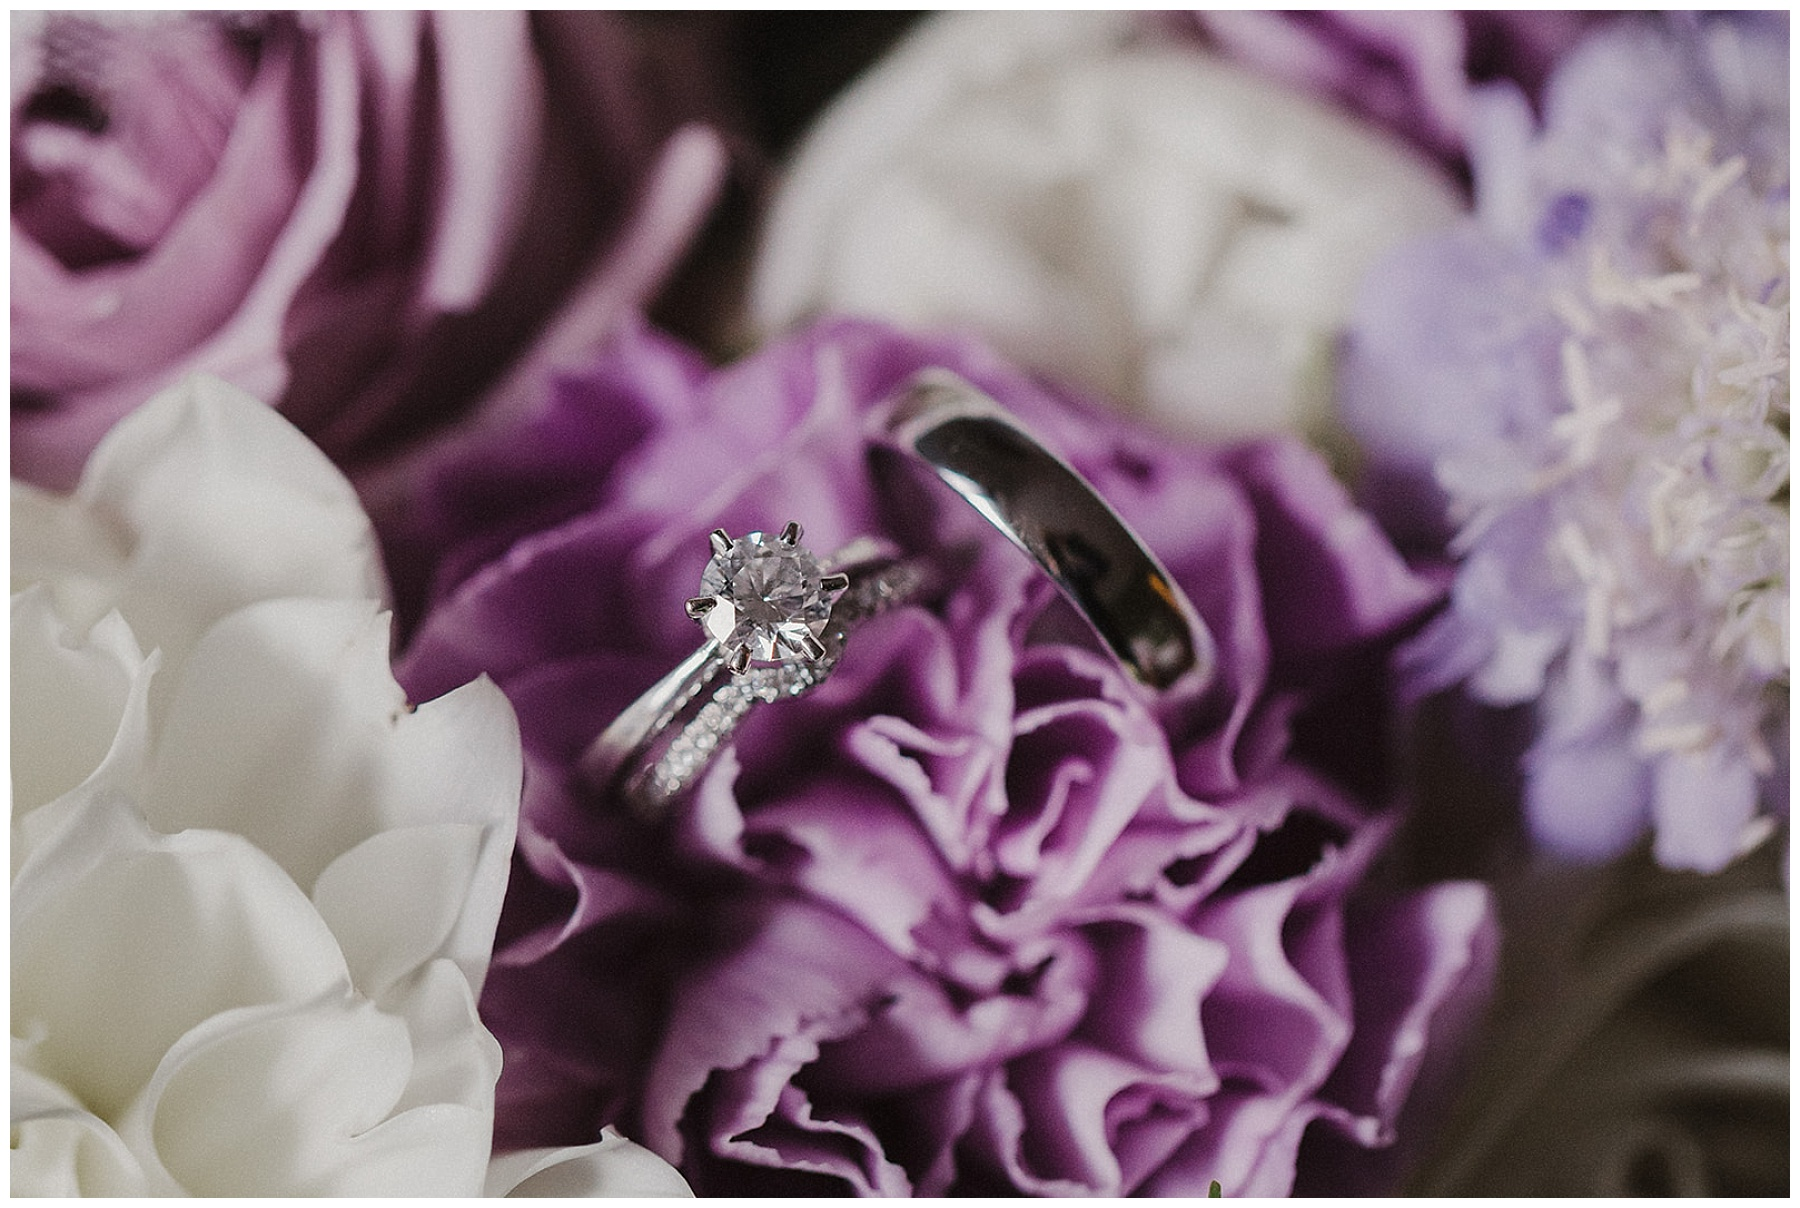 The Bride and Groom's rings in a bed of flowers